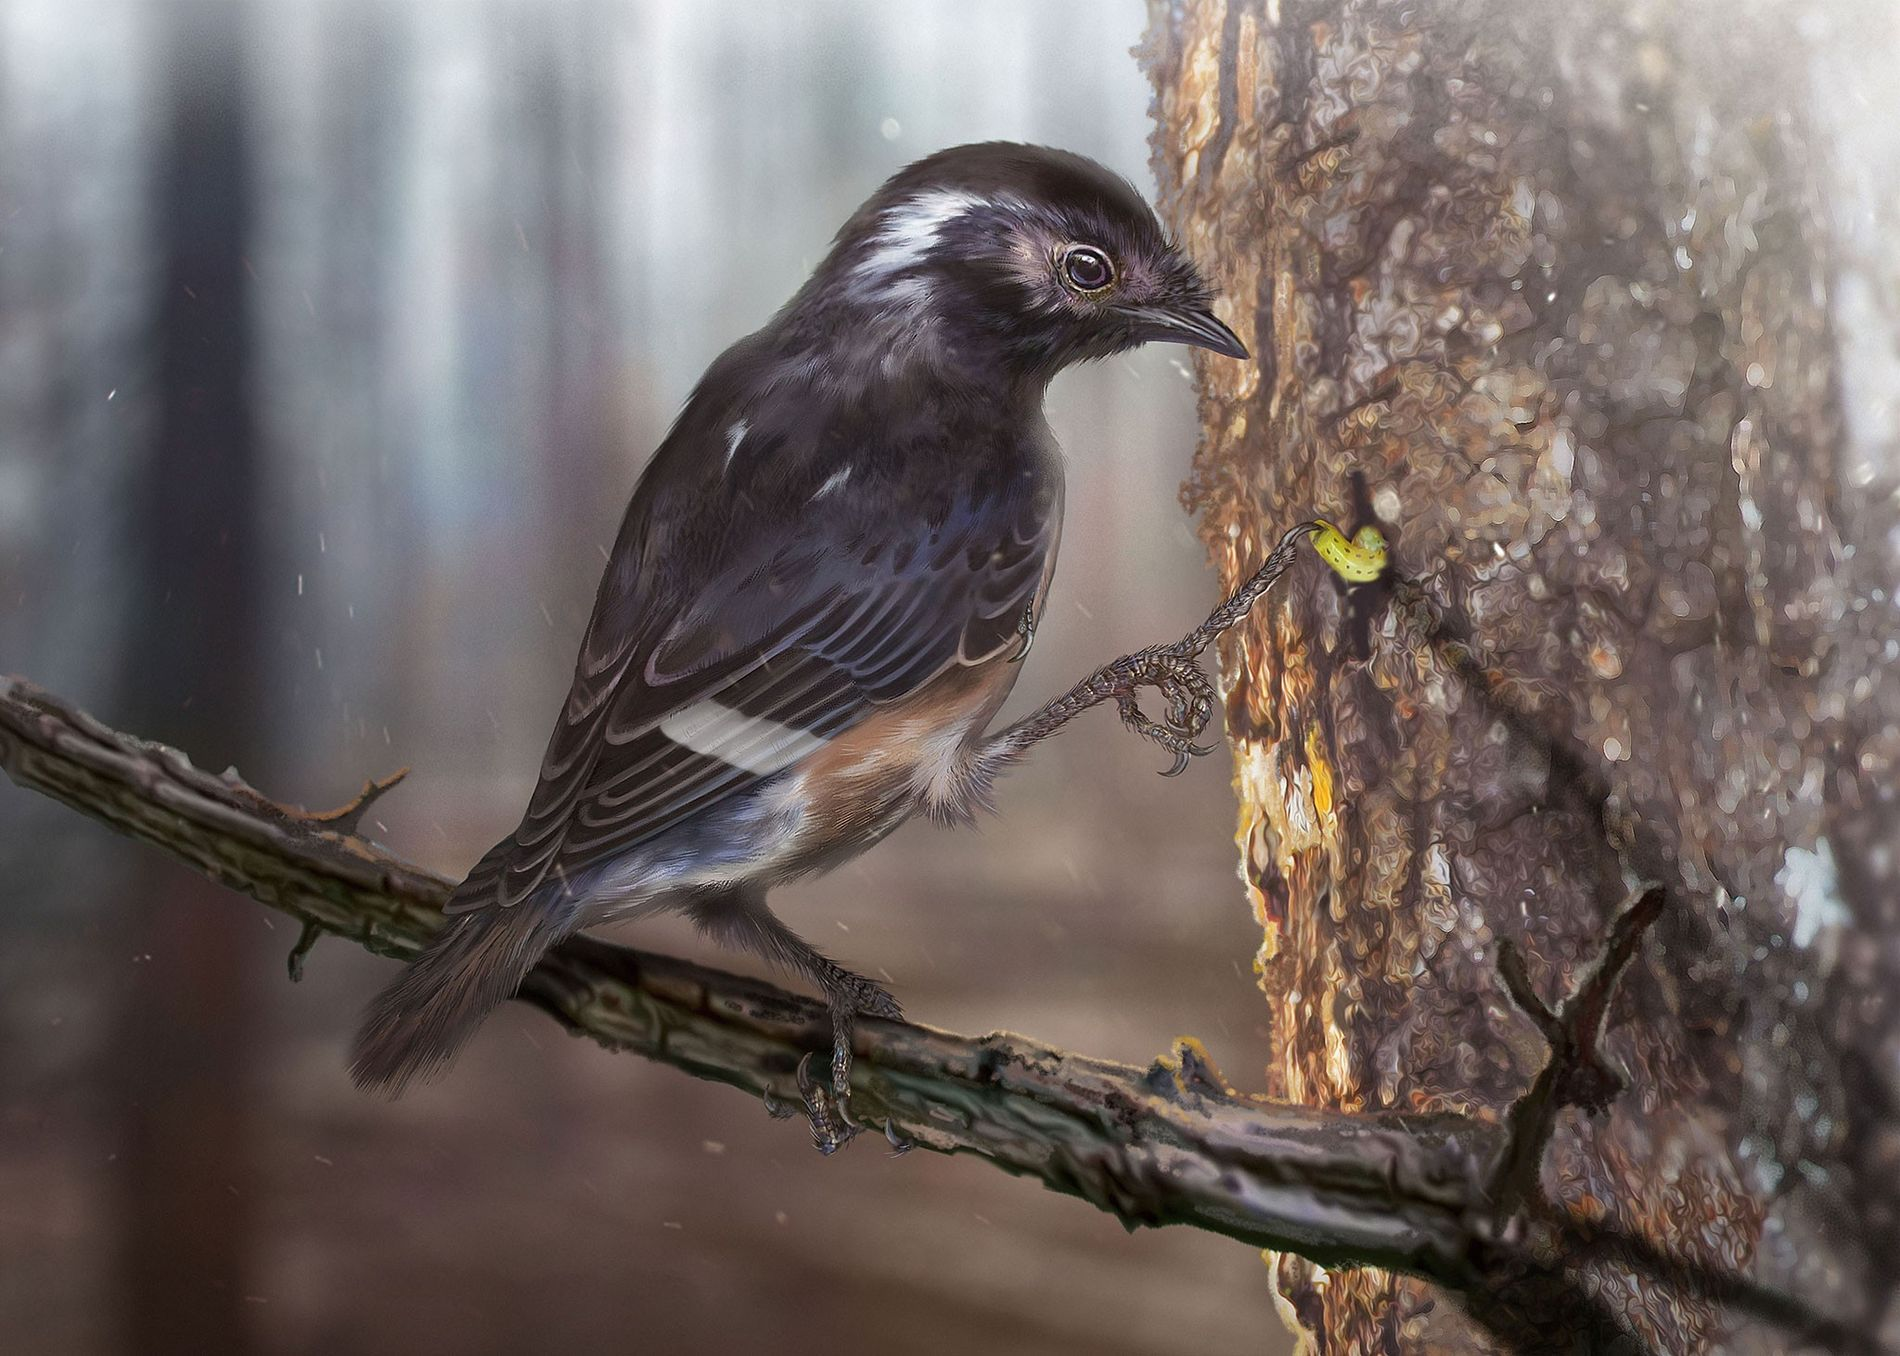 A newfound species of enantiornithine, an extinct group of dino-era birds, has freakishly long third digits ...